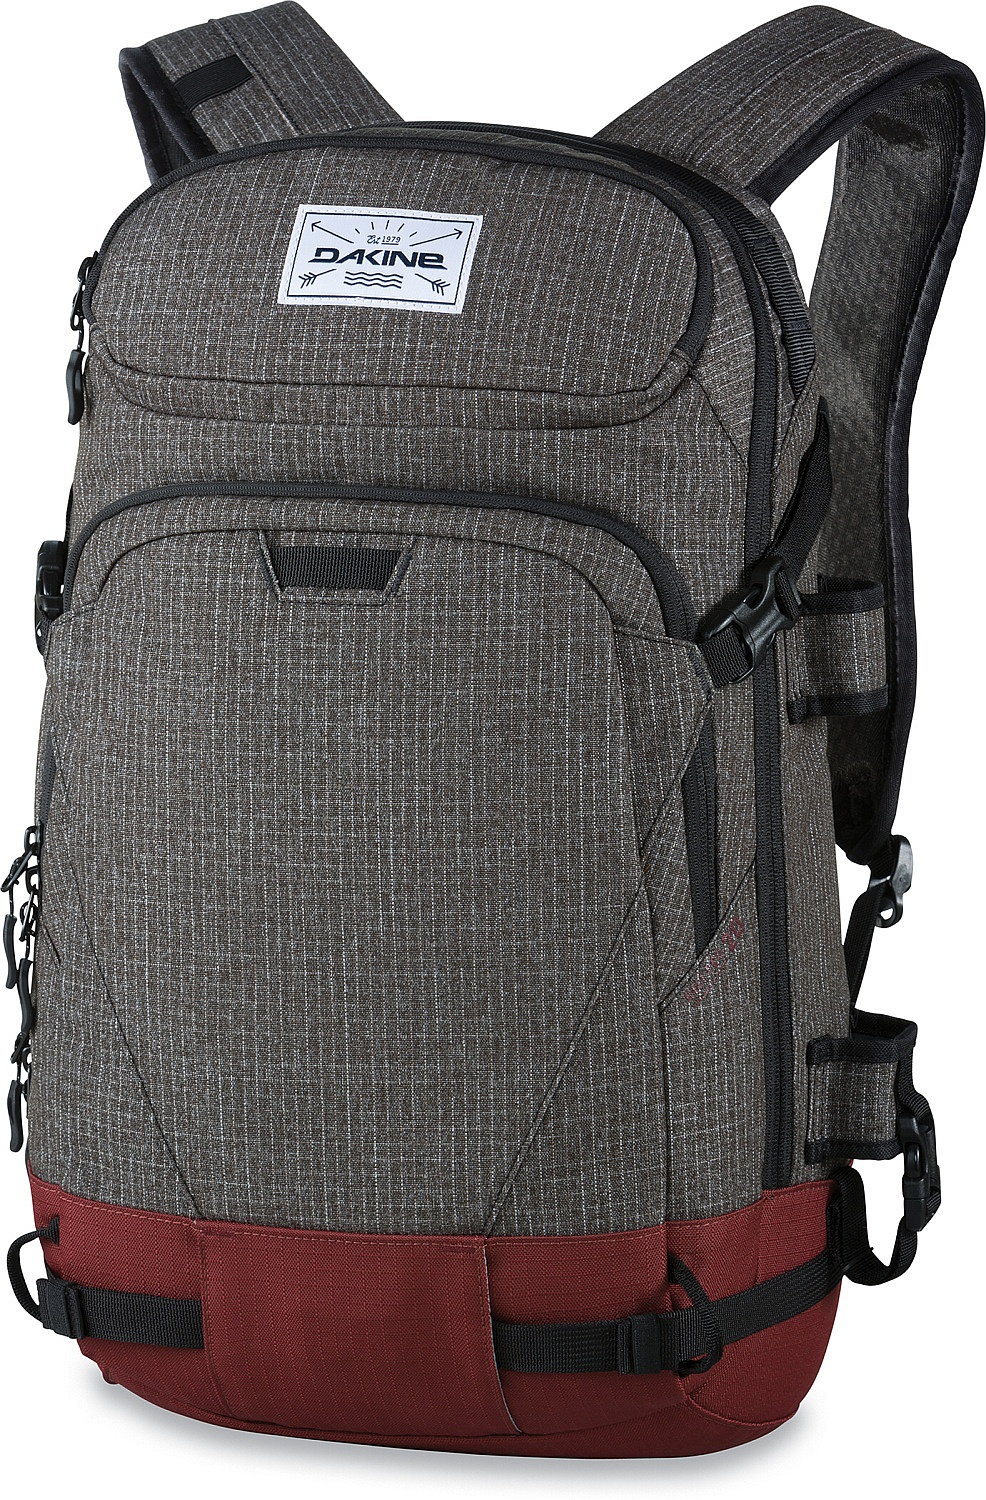 dakine heli pro 20 with 957466 on Dakine backpacks   dakine heli pro dlx 24l snow pack   inferno 223366 furthermore Dakine Heli Pro 20l Backpack in addition Dakine Heli Pro 20l Rugzak Dames Peahd52006 besides 5756 Sac A Dos Heli Pro 20l Dakine furthermore 2416 What Stores Sell Dakine Backpacks.